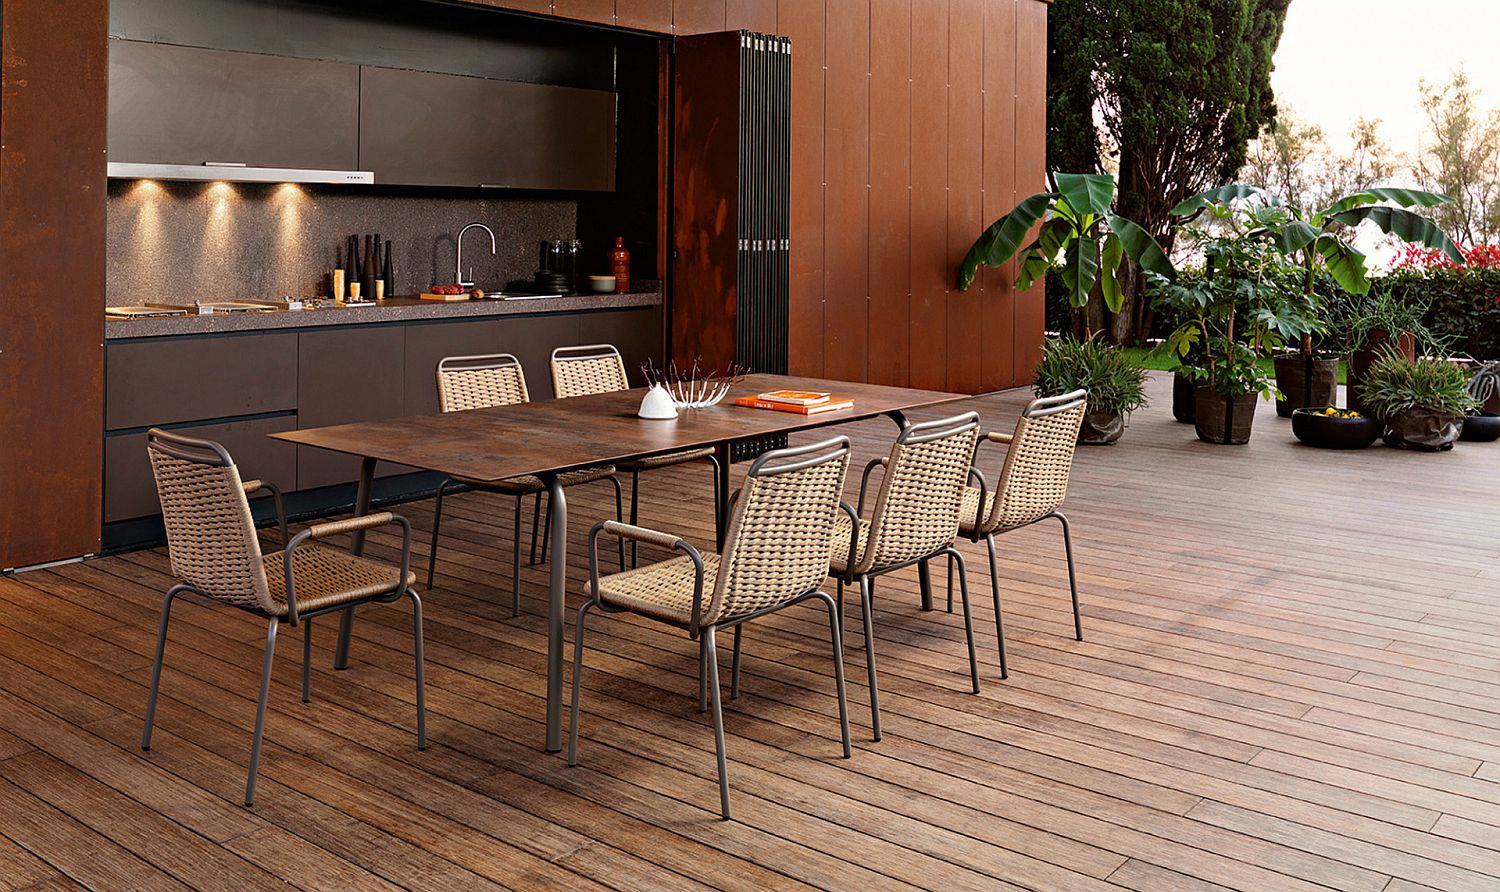 Slim outdoor dining table combined with delightfully woven chairs